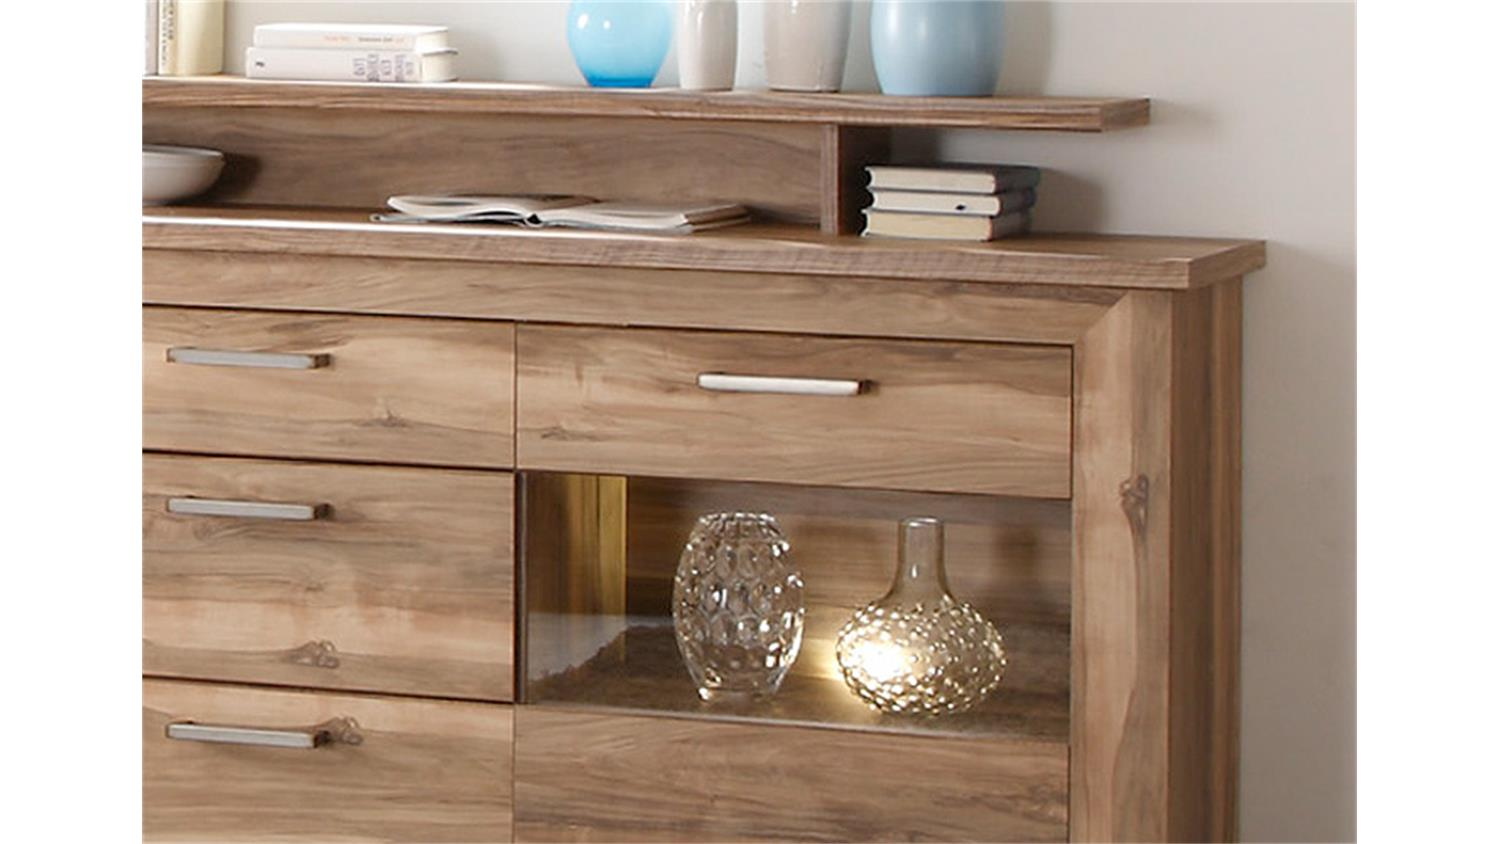 parisot kommode sideboard mit aufsatz alice 8 lisenenoptik wei smash. Black Bedroom Furniture Sets. Home Design Ideas